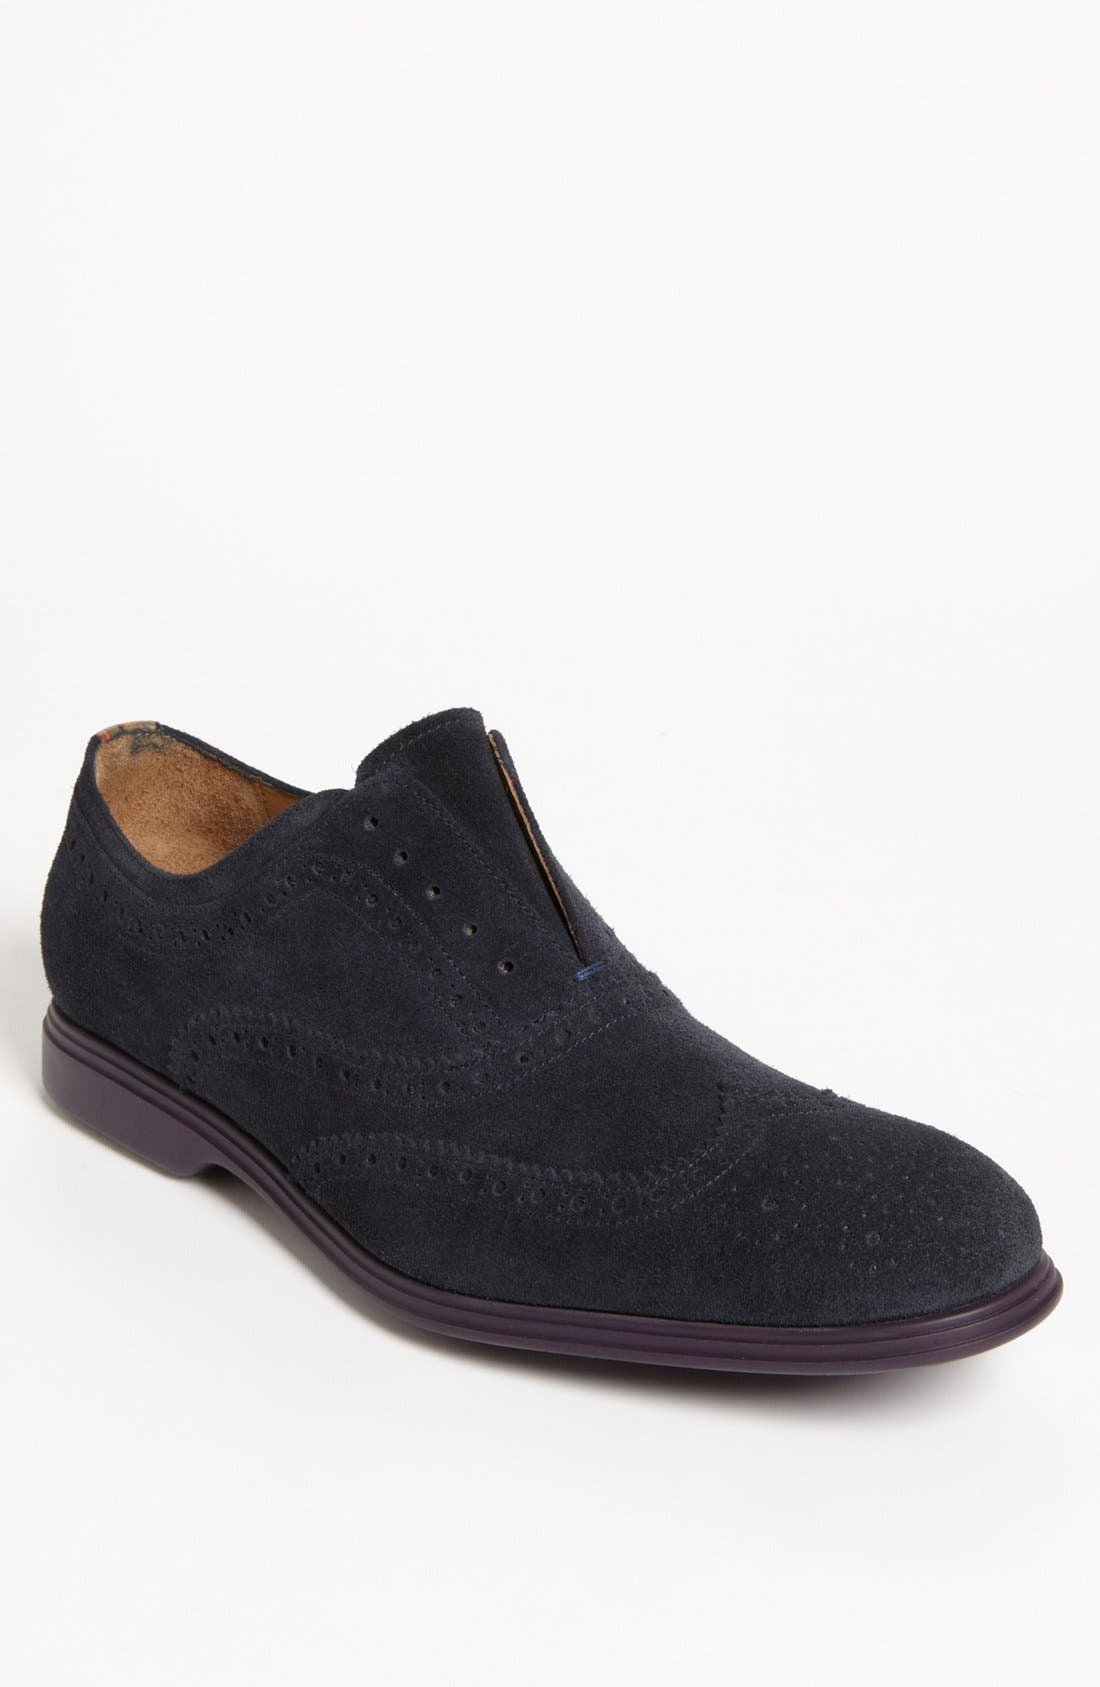 Main Image - Paul Smith 'Carson' Laceless Wingtip